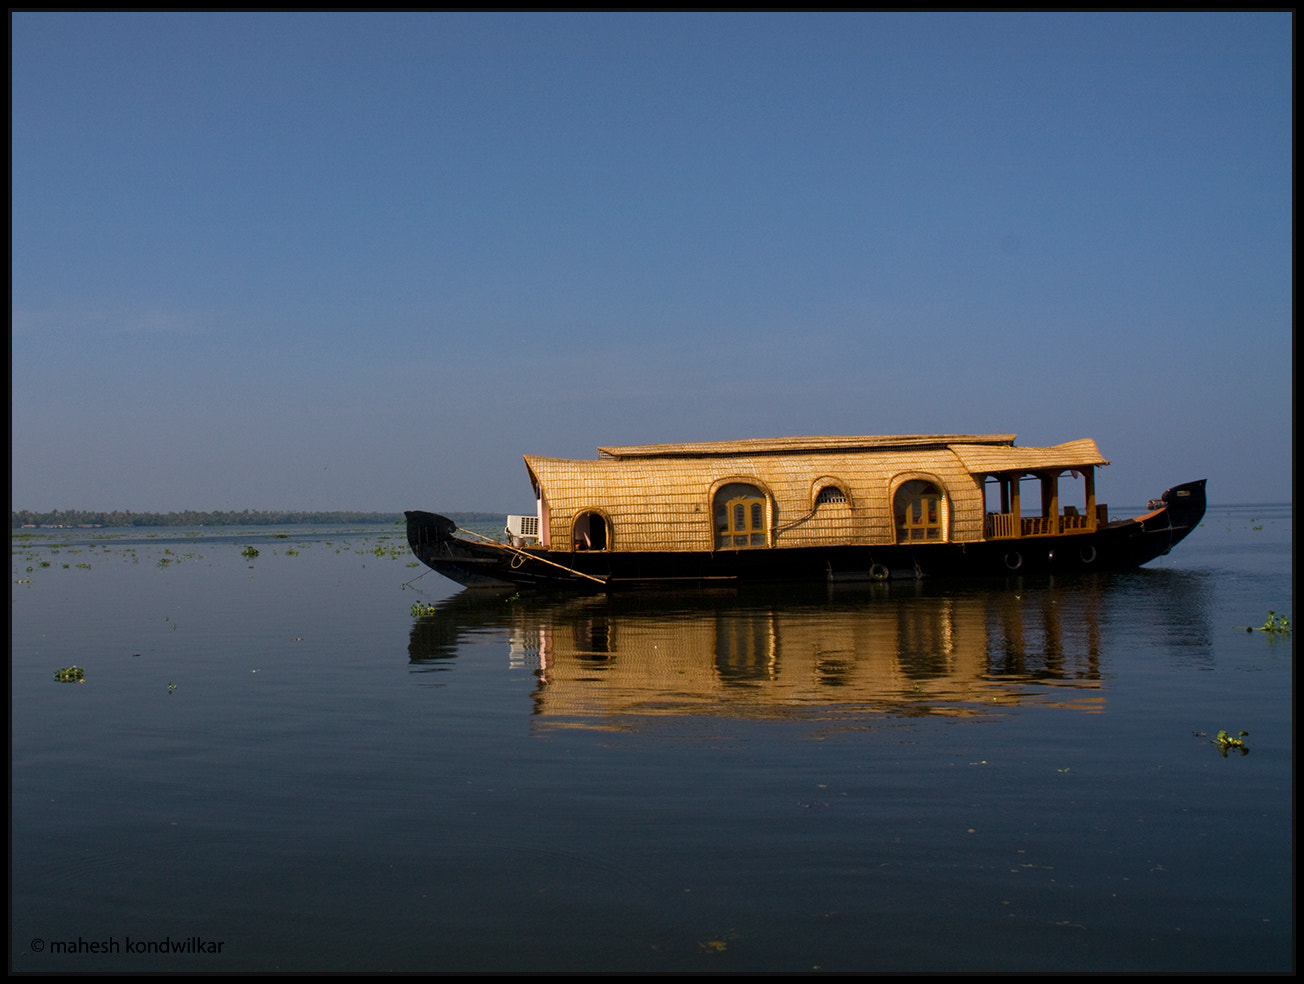 Photograph Kumarakom / Aleppey Houseboat by Mahesh Kondwilkar on 500px